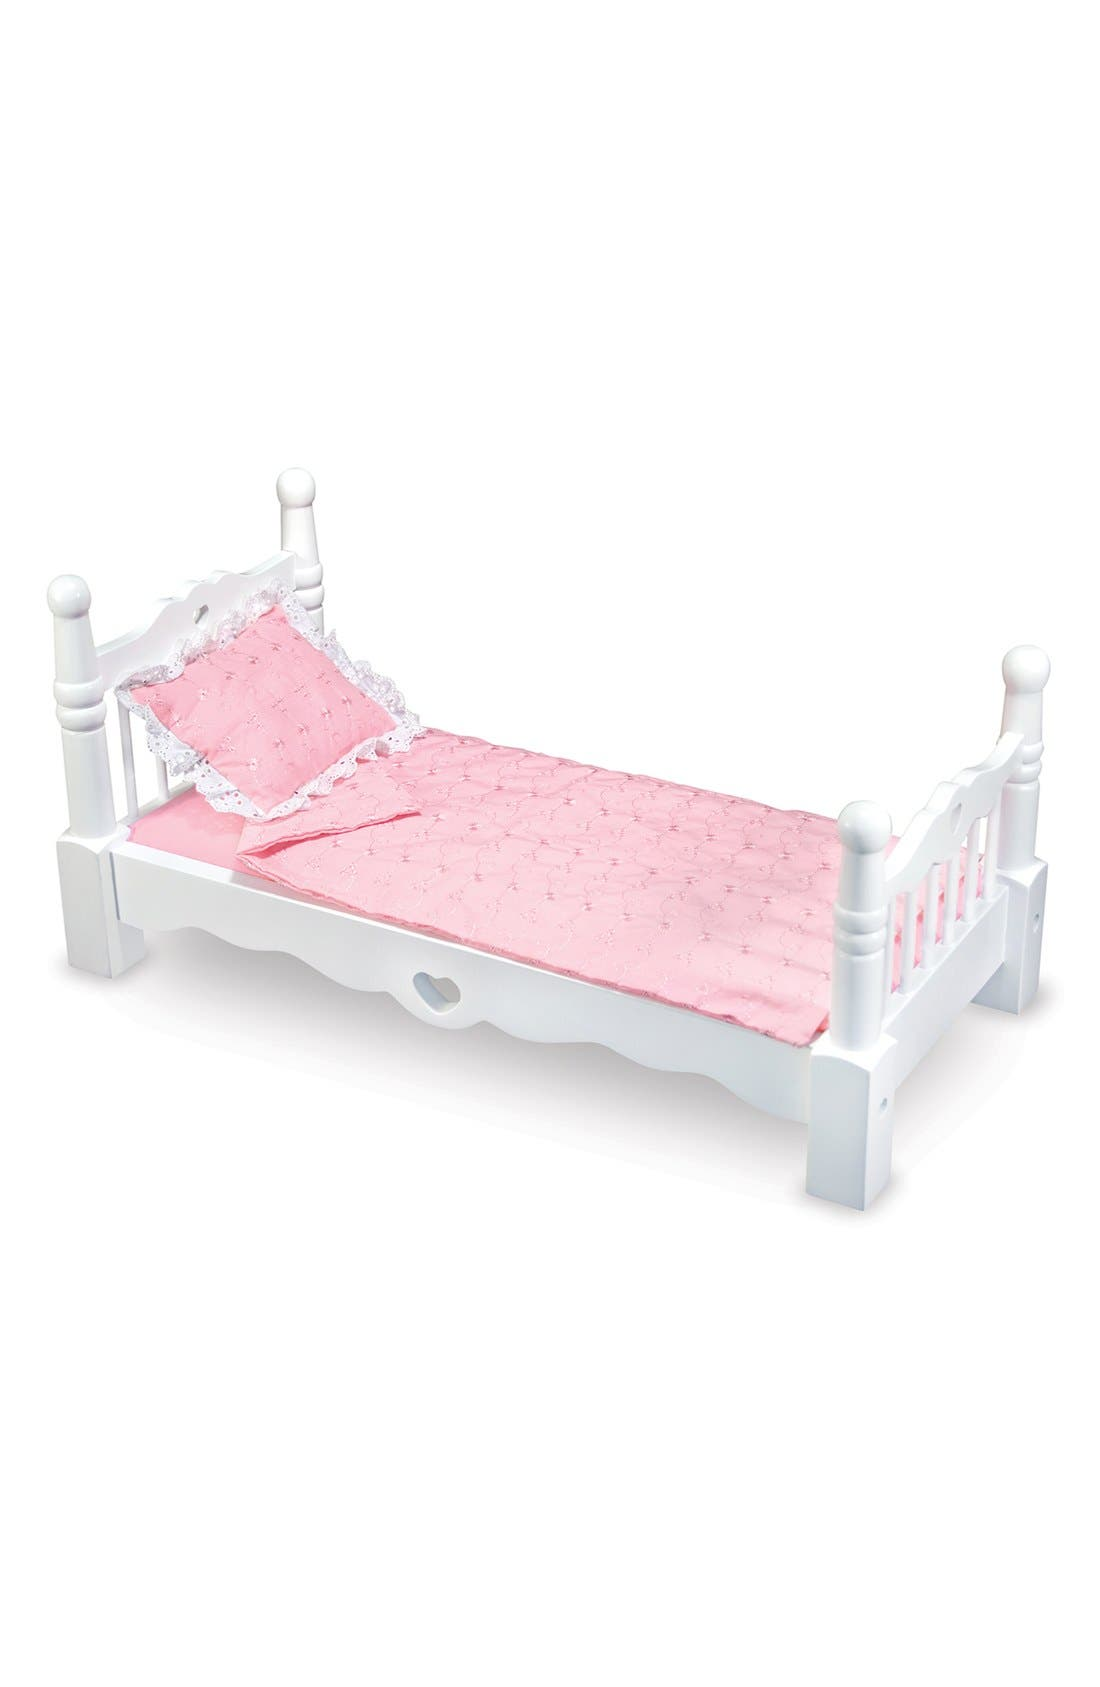 Alternate Image 1 Selected - Melissa & Doug Wooden Doll Bed